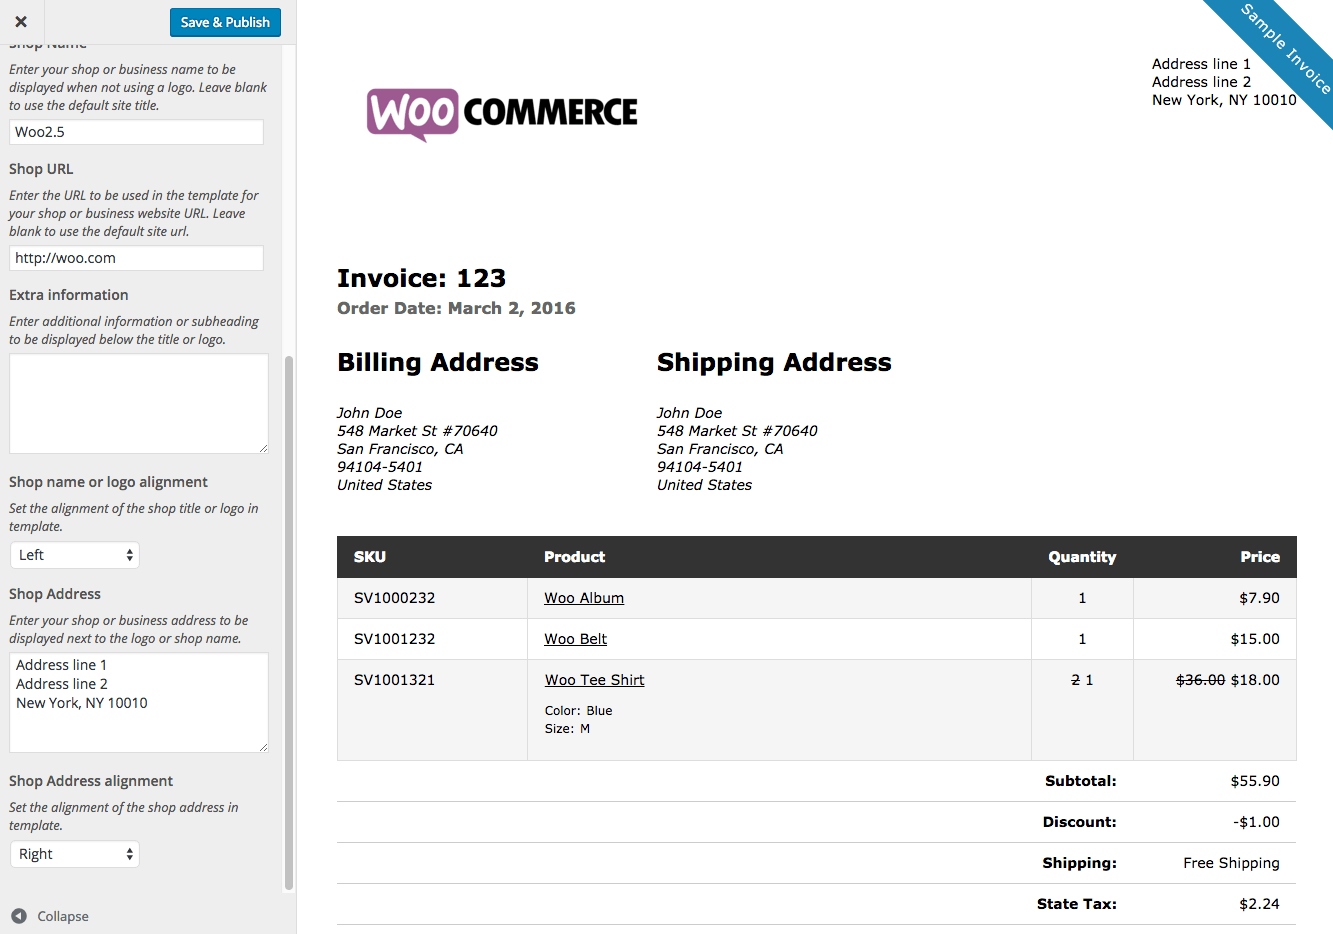 Reliefworkersus  Fascinating Woocommerce Print Invoices Amp Packing Lists  Woocommerce Docs With Licious Woocommerce Print Invoices  Packing Lists Customizer With Agreeable Email Invoices Also Late Fees On Invoices In Addition Healthport Invoice And Invoice Price On New Cars As Well As Pest Control Invoices Additionally Free Invoicing Templates From Docswoocommercecom With Reliefworkersus  Licious Woocommerce Print Invoices Amp Packing Lists  Woocommerce Docs With Agreeable Woocommerce Print Invoices  Packing Lists Customizer And Fascinating Email Invoices Also Late Fees On Invoices In Addition Healthport Invoice From Docswoocommercecom